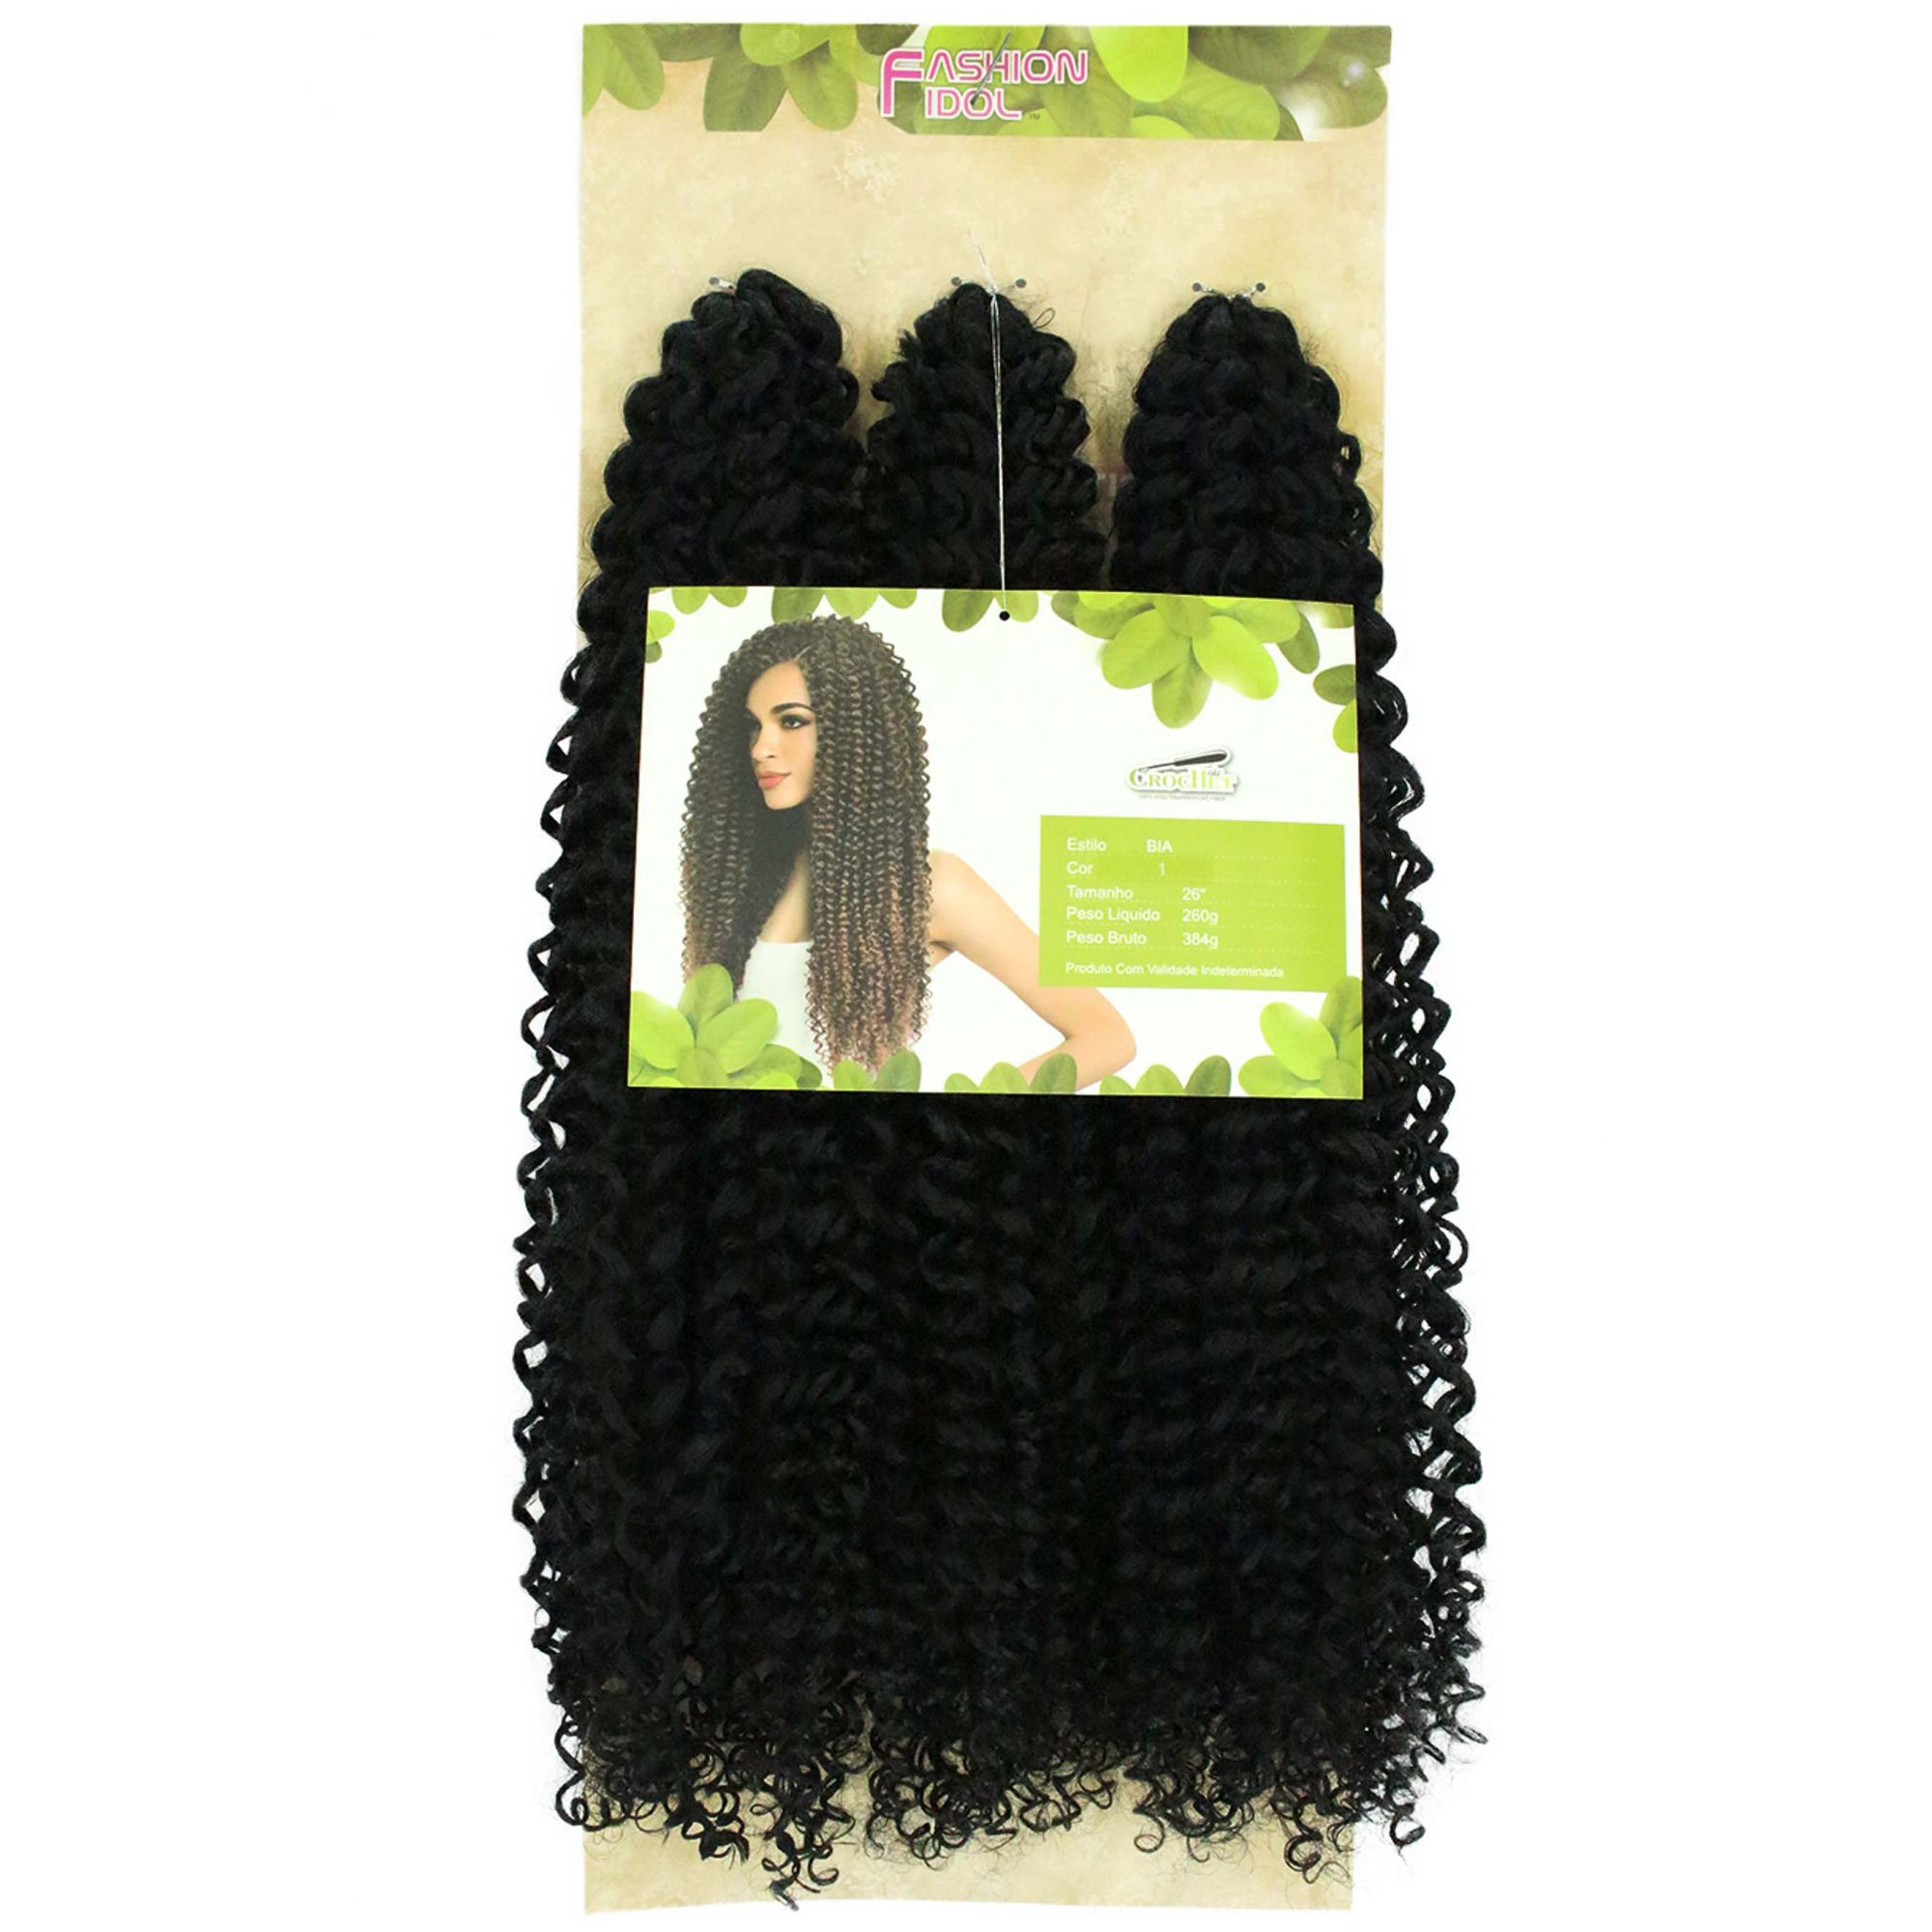 Cabelo Orgânico - Sleek Fashion Idol True Me Crochet Braid - Bia